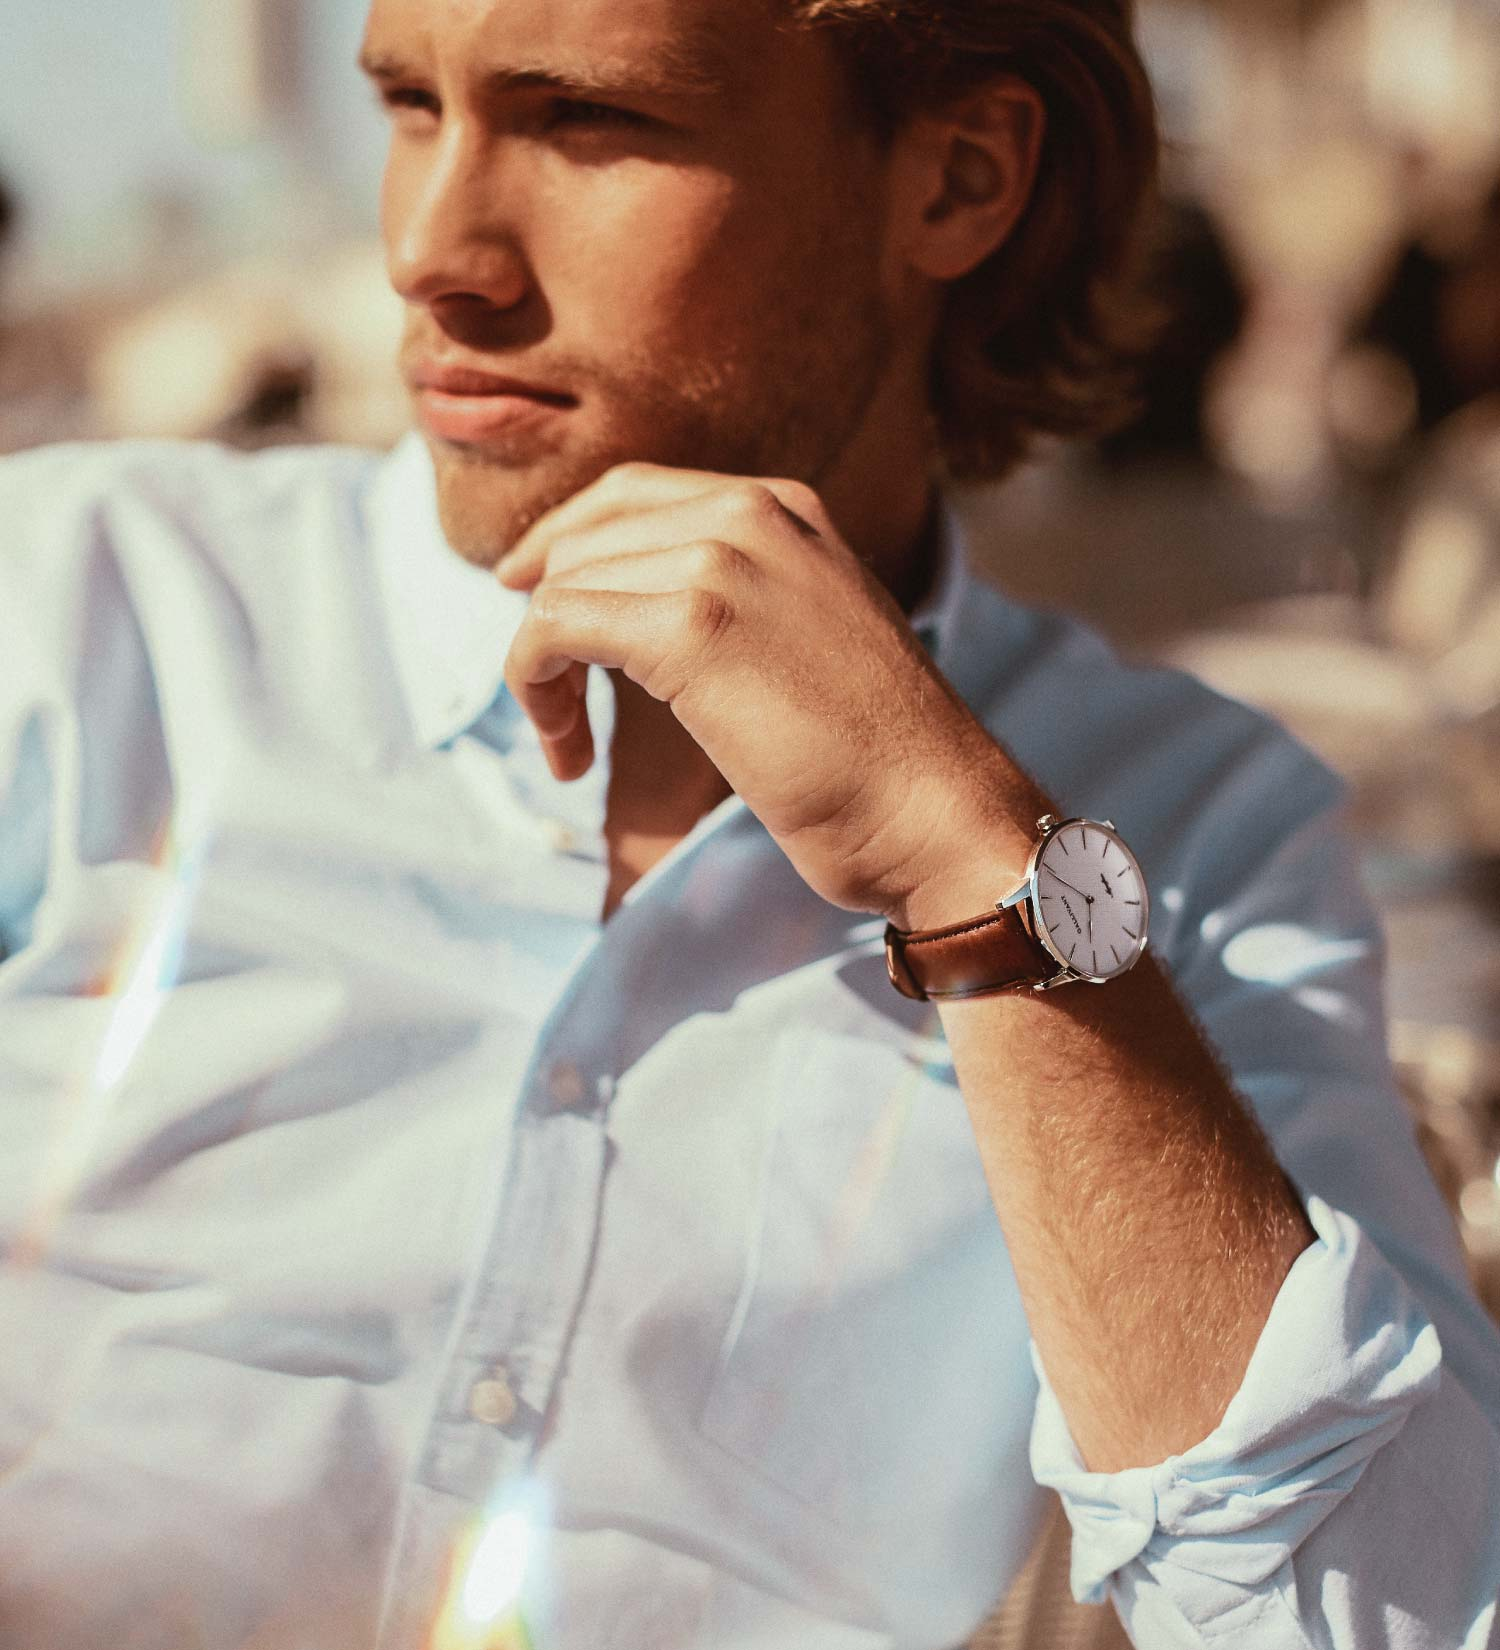 Classic looking guy wearing Gallivant's Aquafino watch